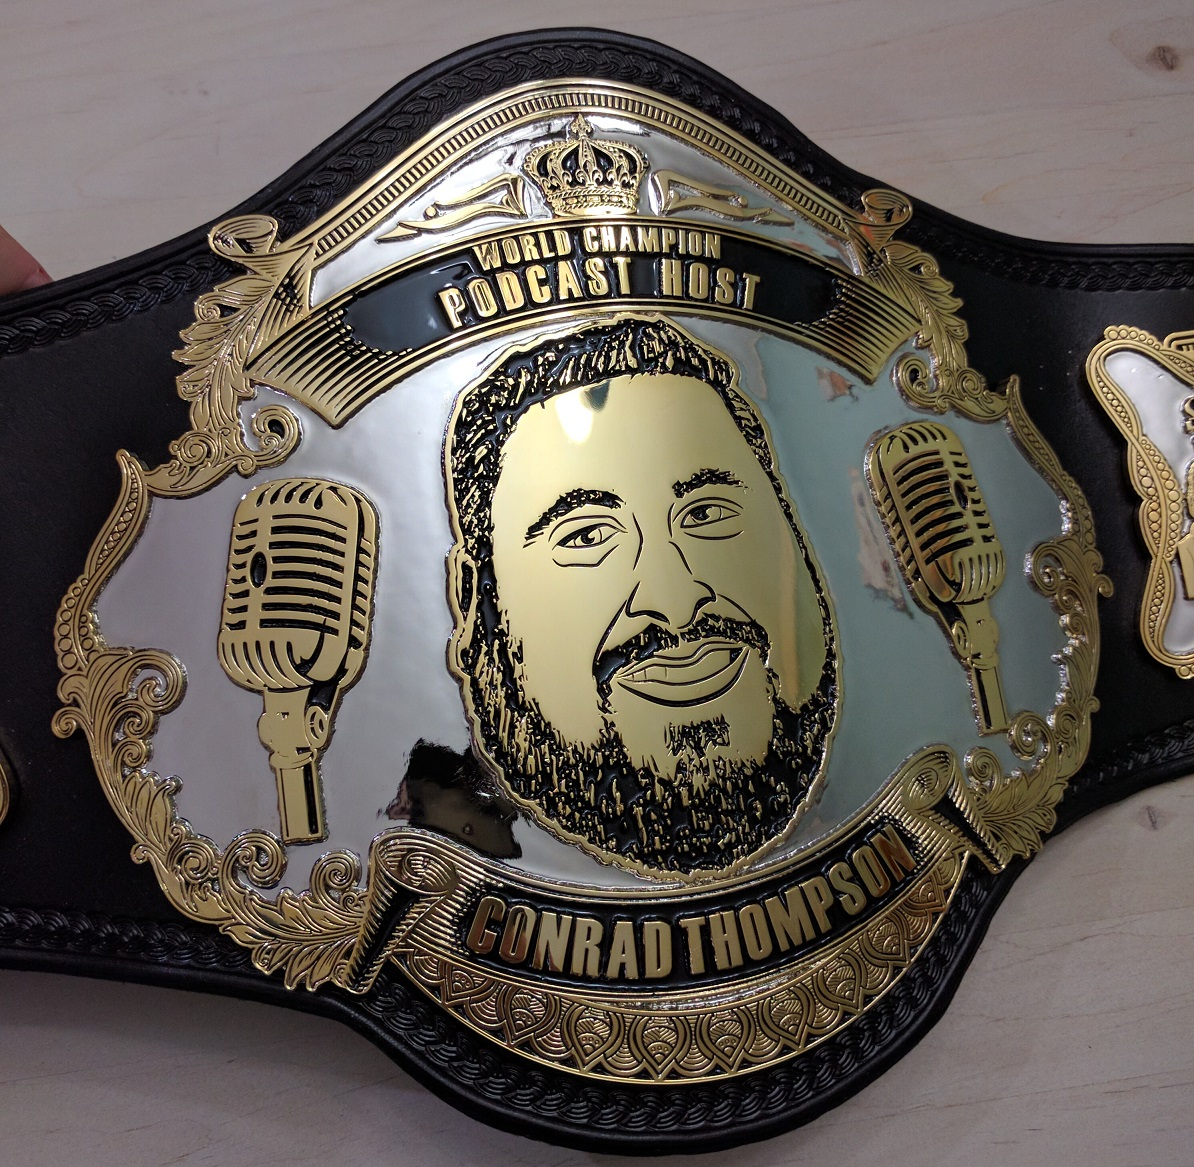 Podcasting World Championship | Belts by Dan